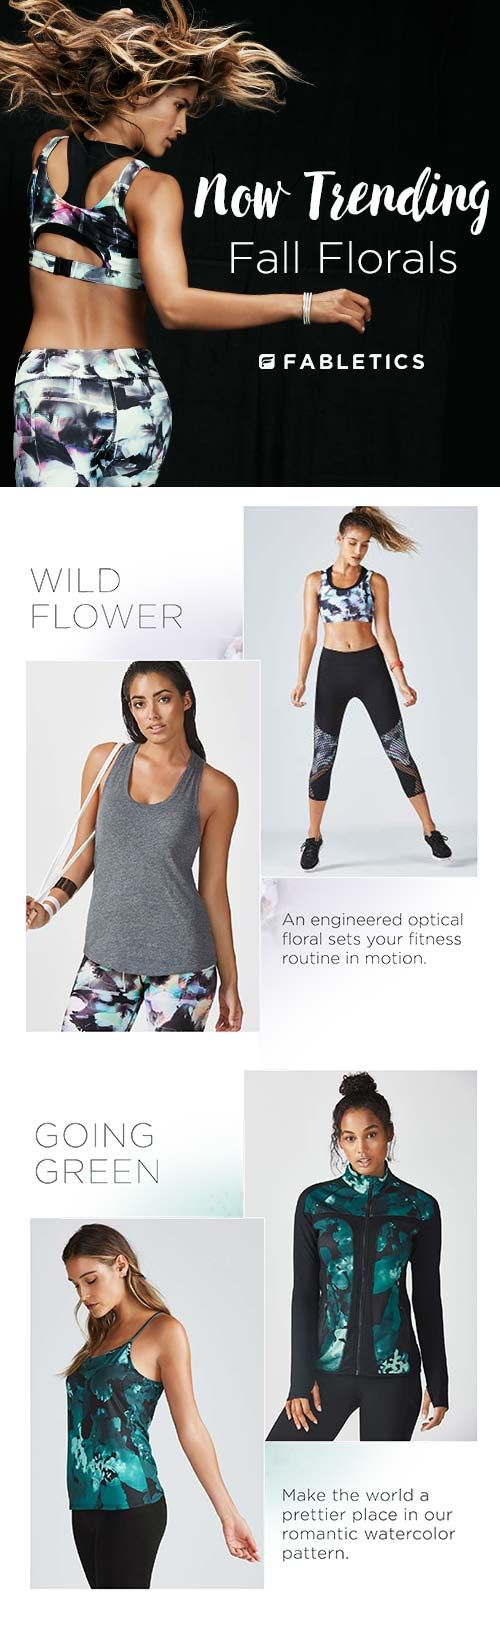 Now trending: Fall Florals. Discover Fabletics by Kate Hudson as we explore fall florals, delicate details, mesh panels and launch our Signature Bestsellers Collection. For a limited time only, get your first outfit for $25 when you become a VIP Member. Don't miss out on your favorite looks!